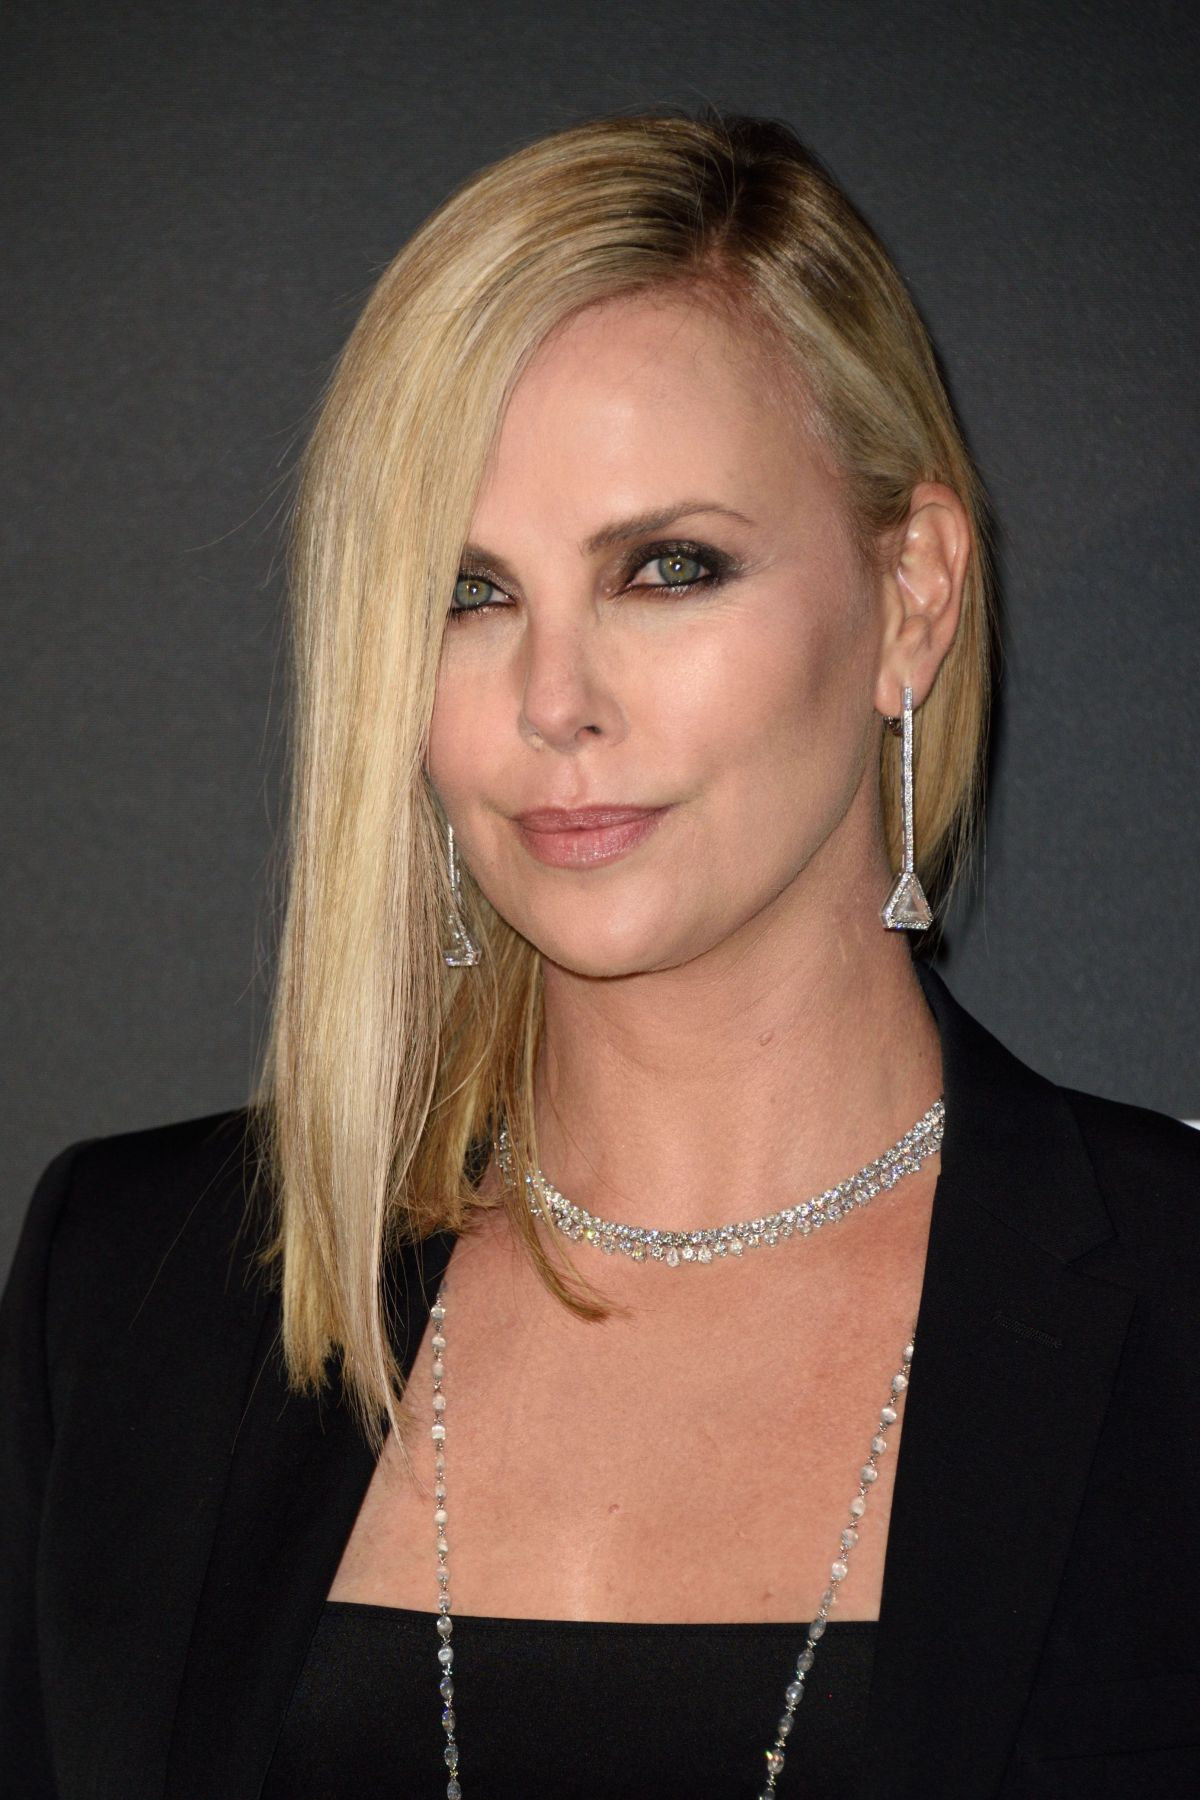 CHARLIZE THERON at The Fate of the Furious Premiere in ... Charlize Theron